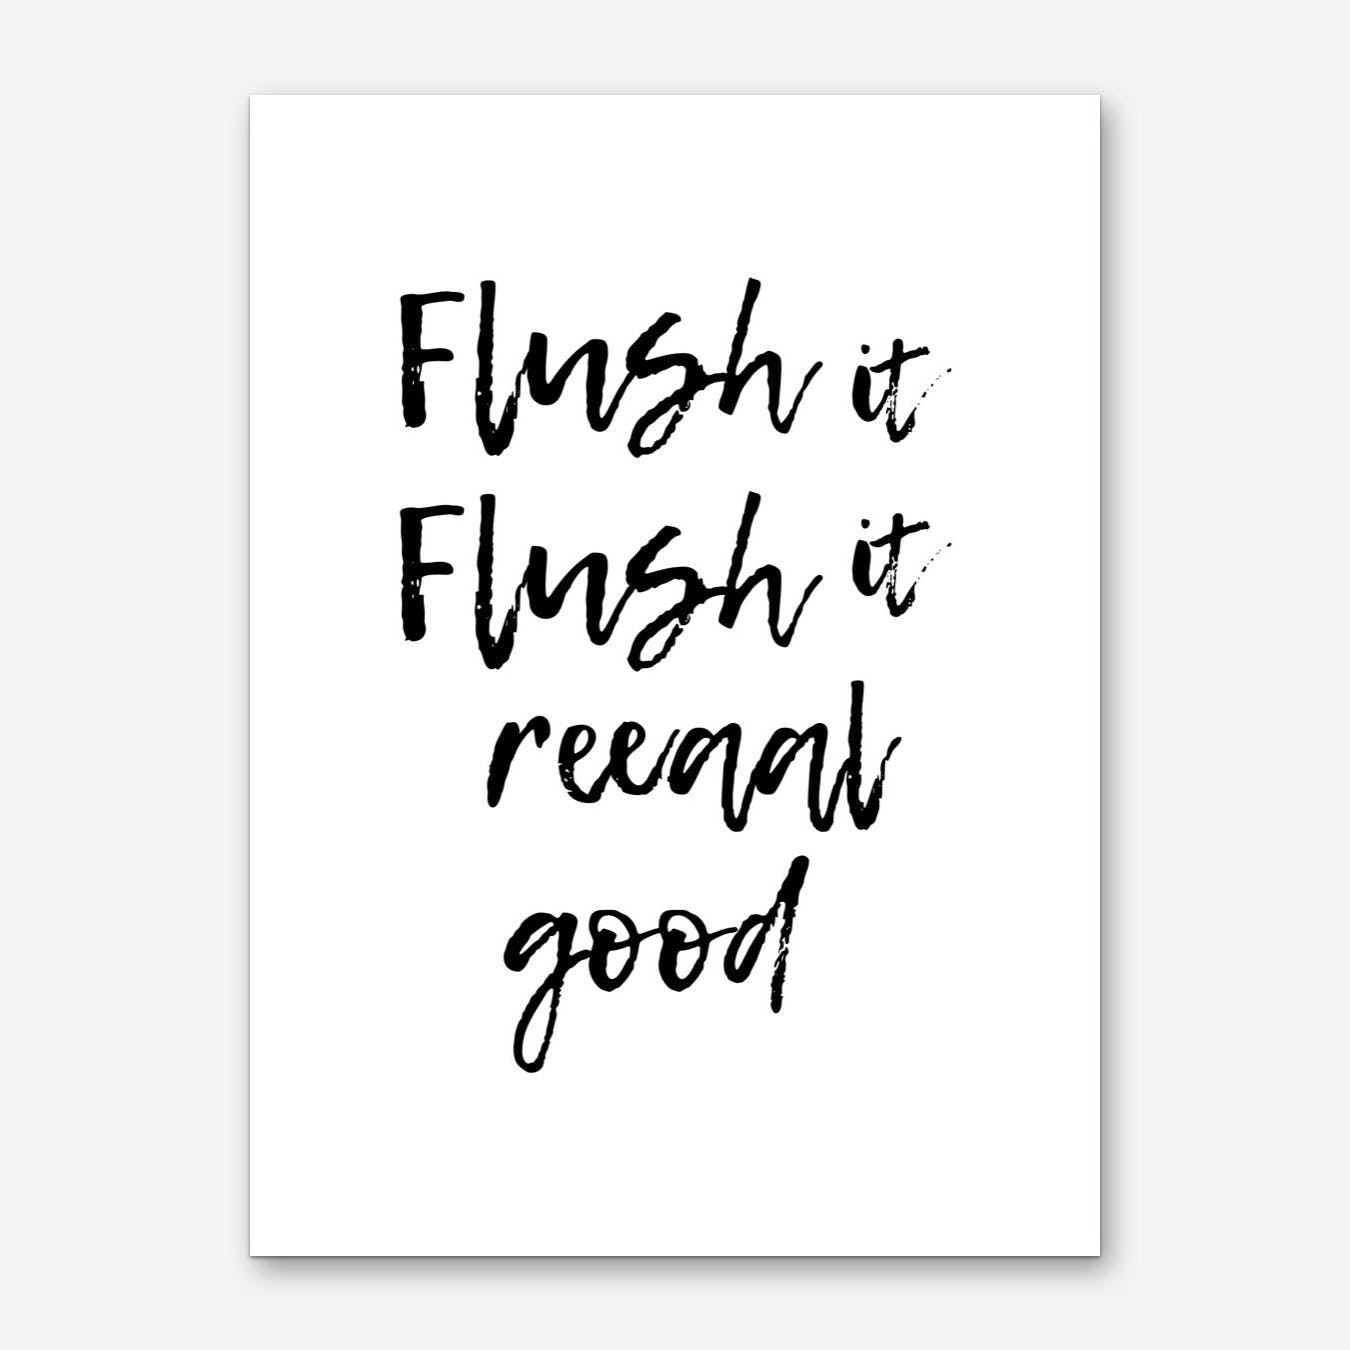 Flush It Flush It Reaal Good Art Print